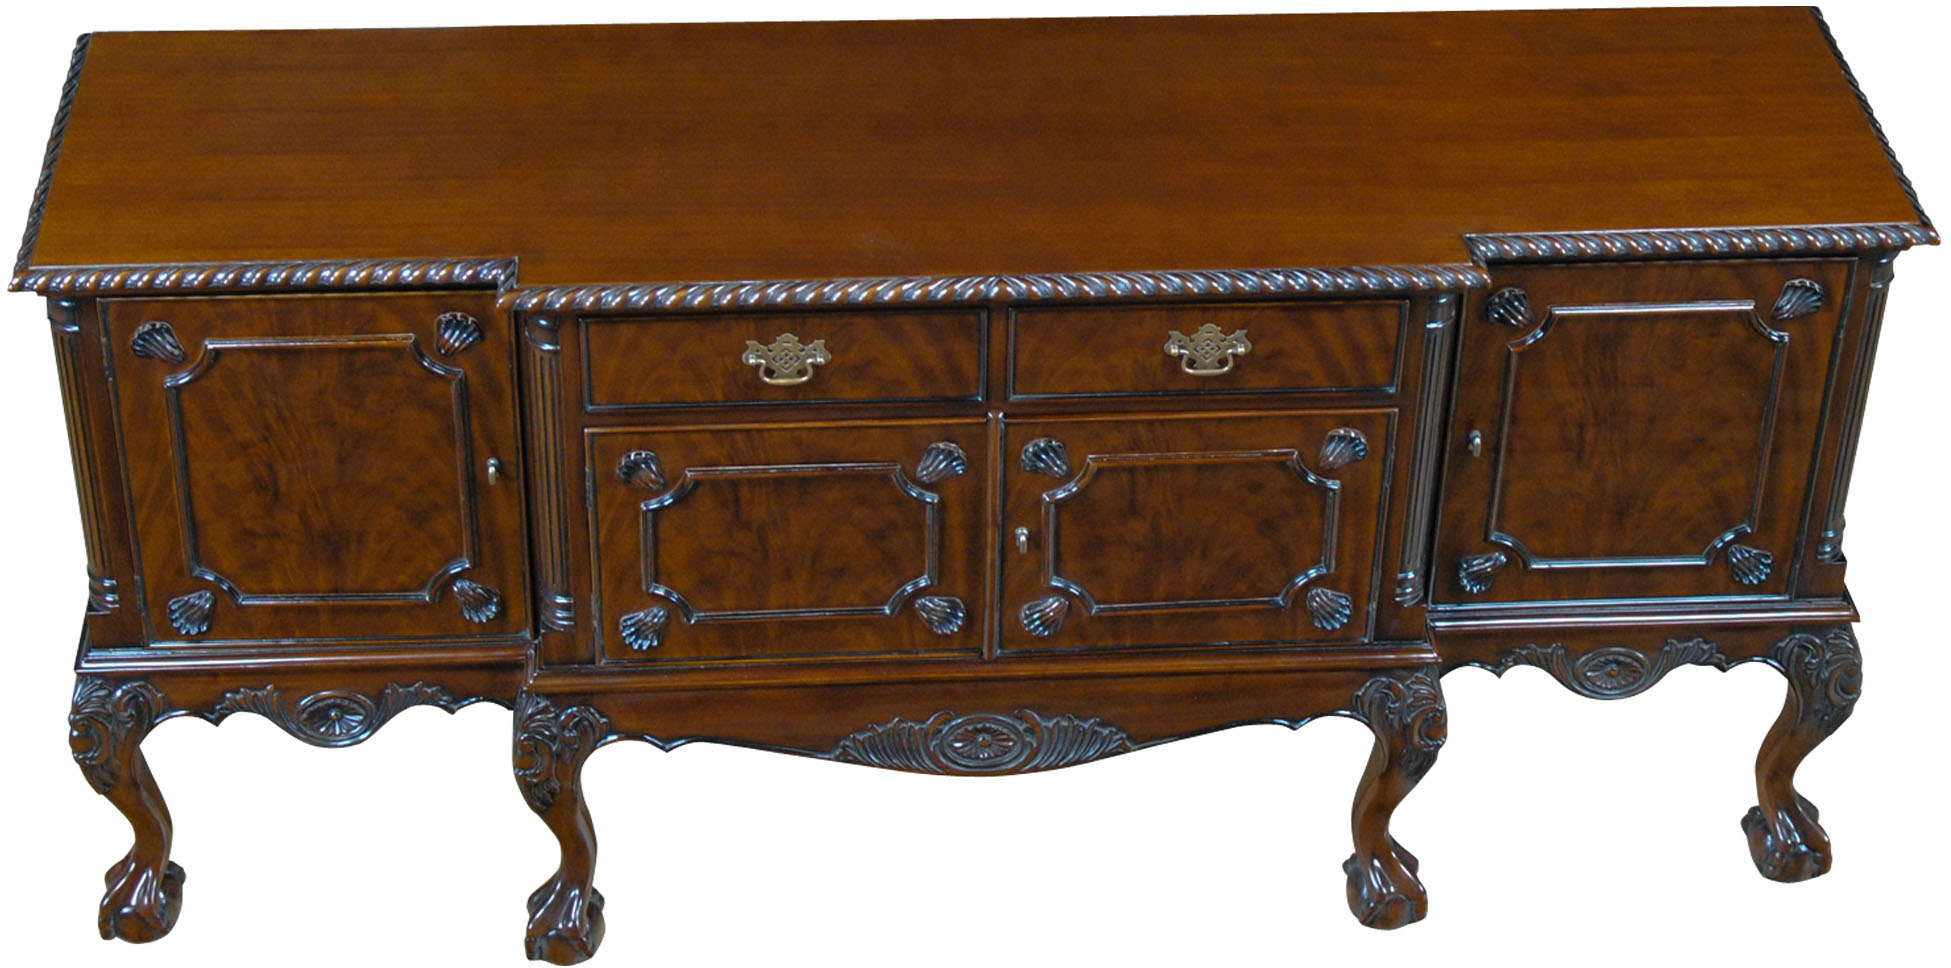 Sideboard Real Details About Classic High Leg Chippendale Sideboard In Mahogany Wood Ball In Claw Feet